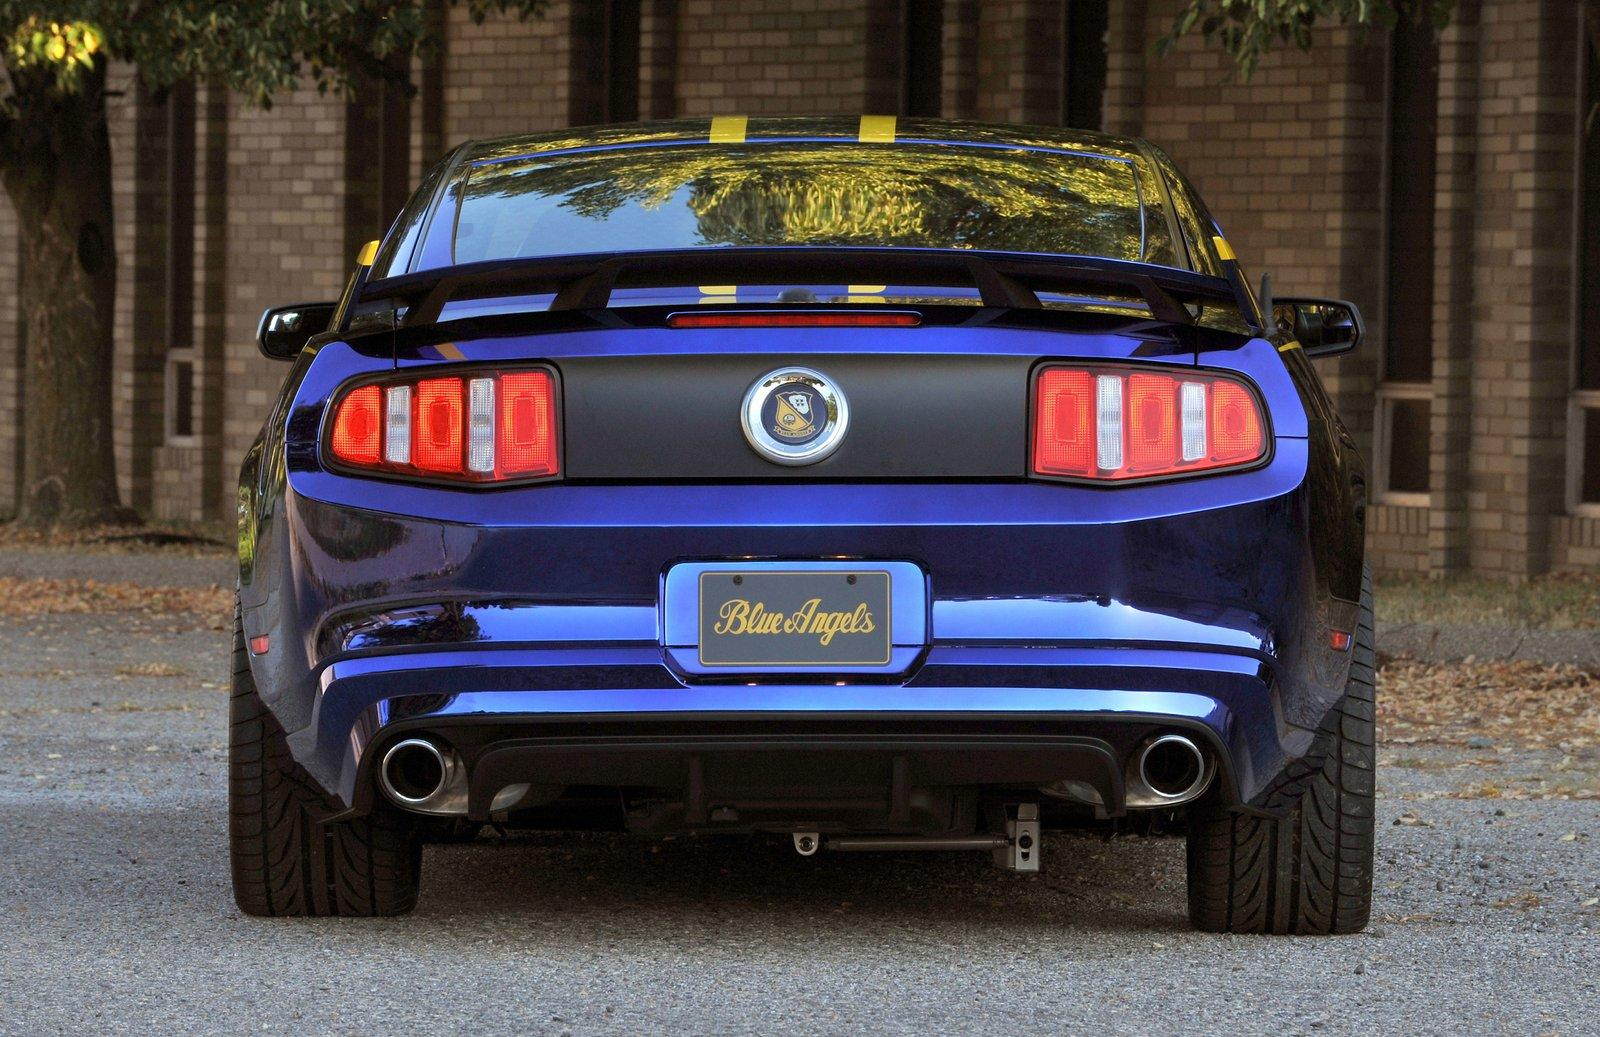 2012 ford mustang blue angels edition 8 2012 Ford Mustang Blue Angels to Gift Mustang GT Variant